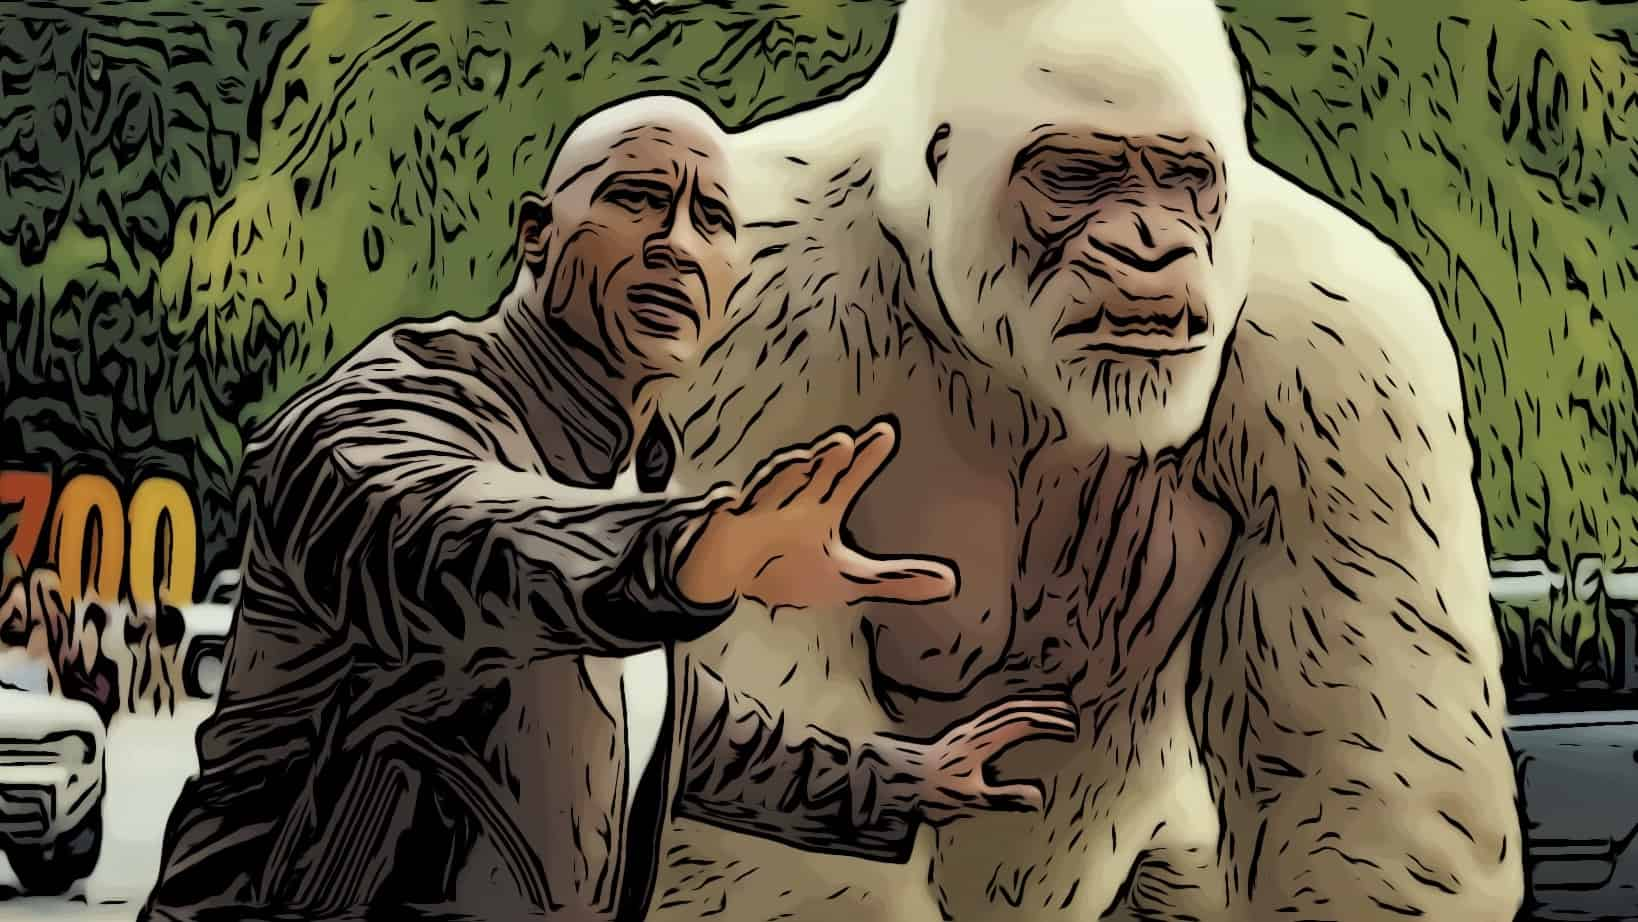 Scene from Rampage for Dwayne Johnson movies post.